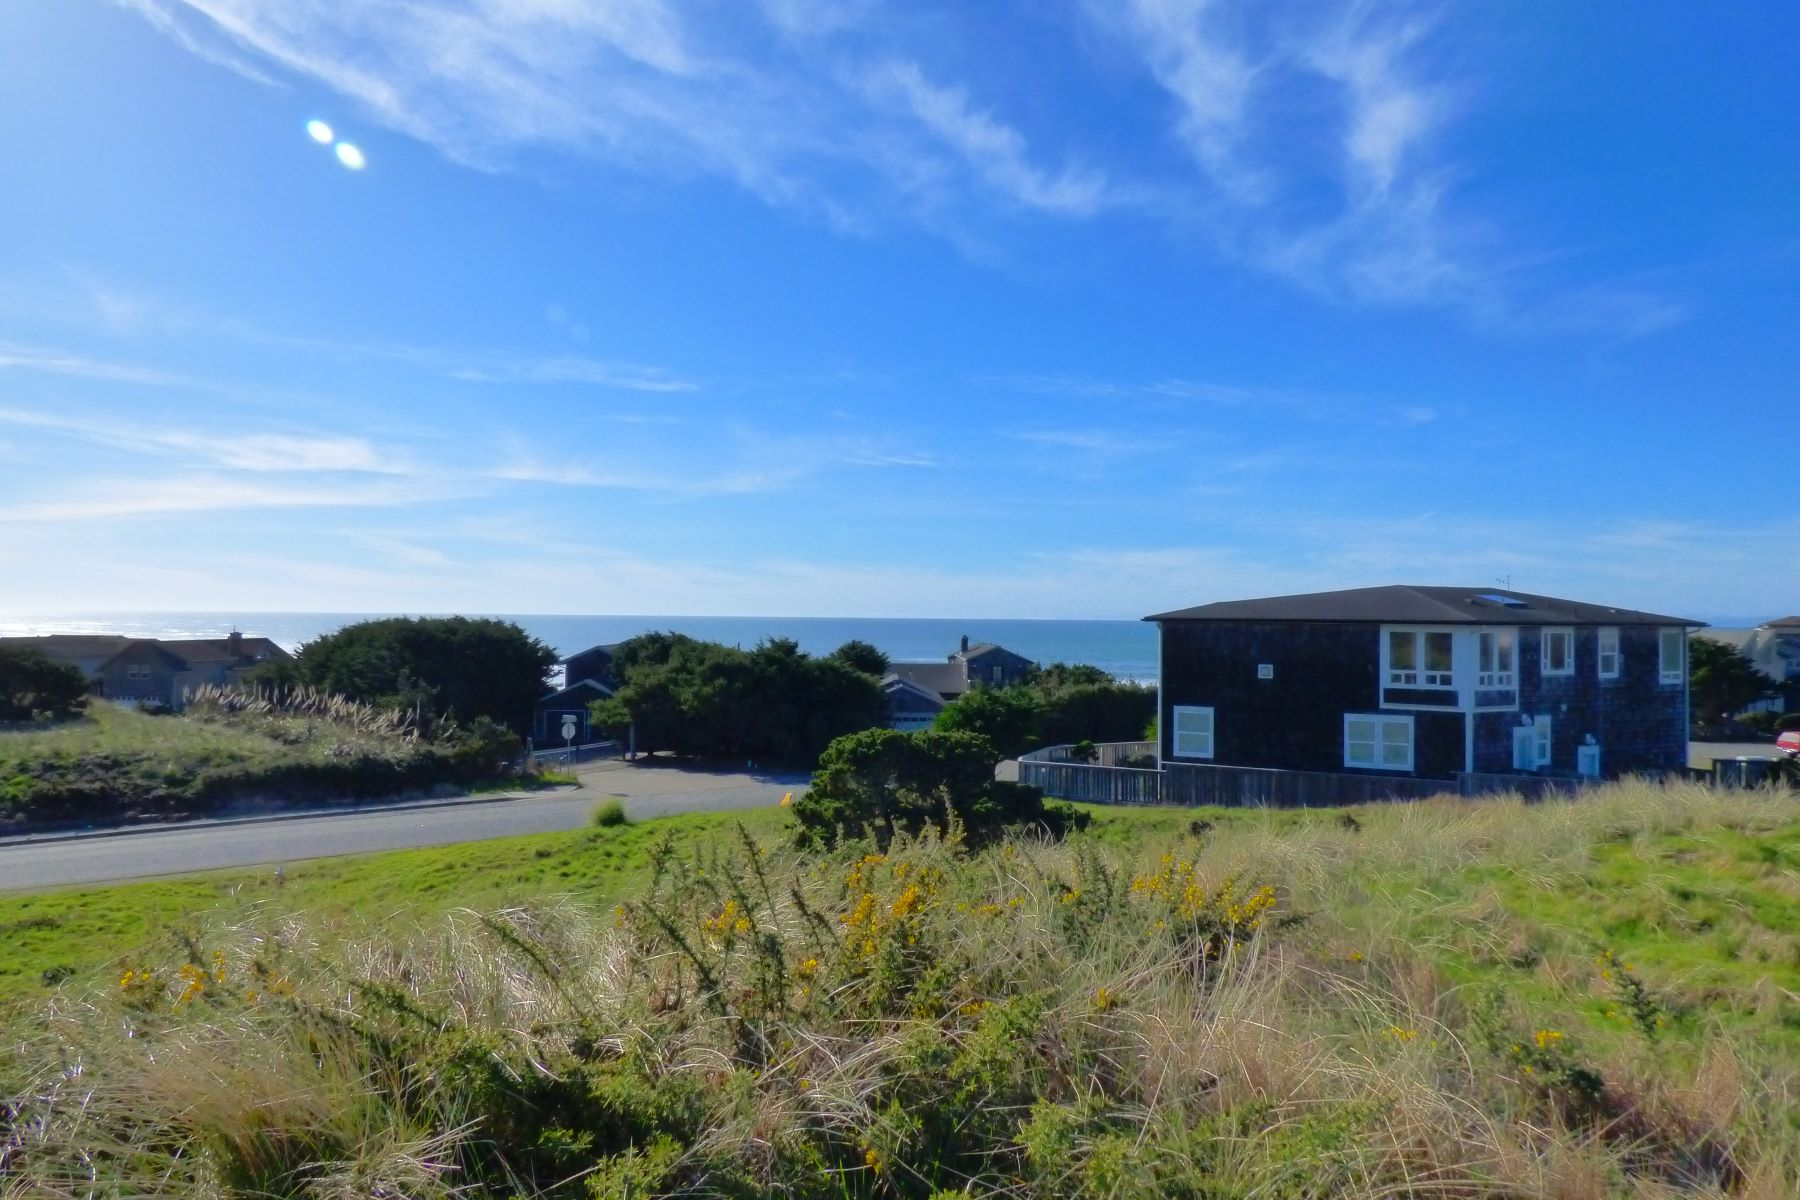 Terreno para Venda às Panoramic Ocean View Development Propertey 0 Beach Loop Drive, Bandon, Oregon 97411 Estados Unidos